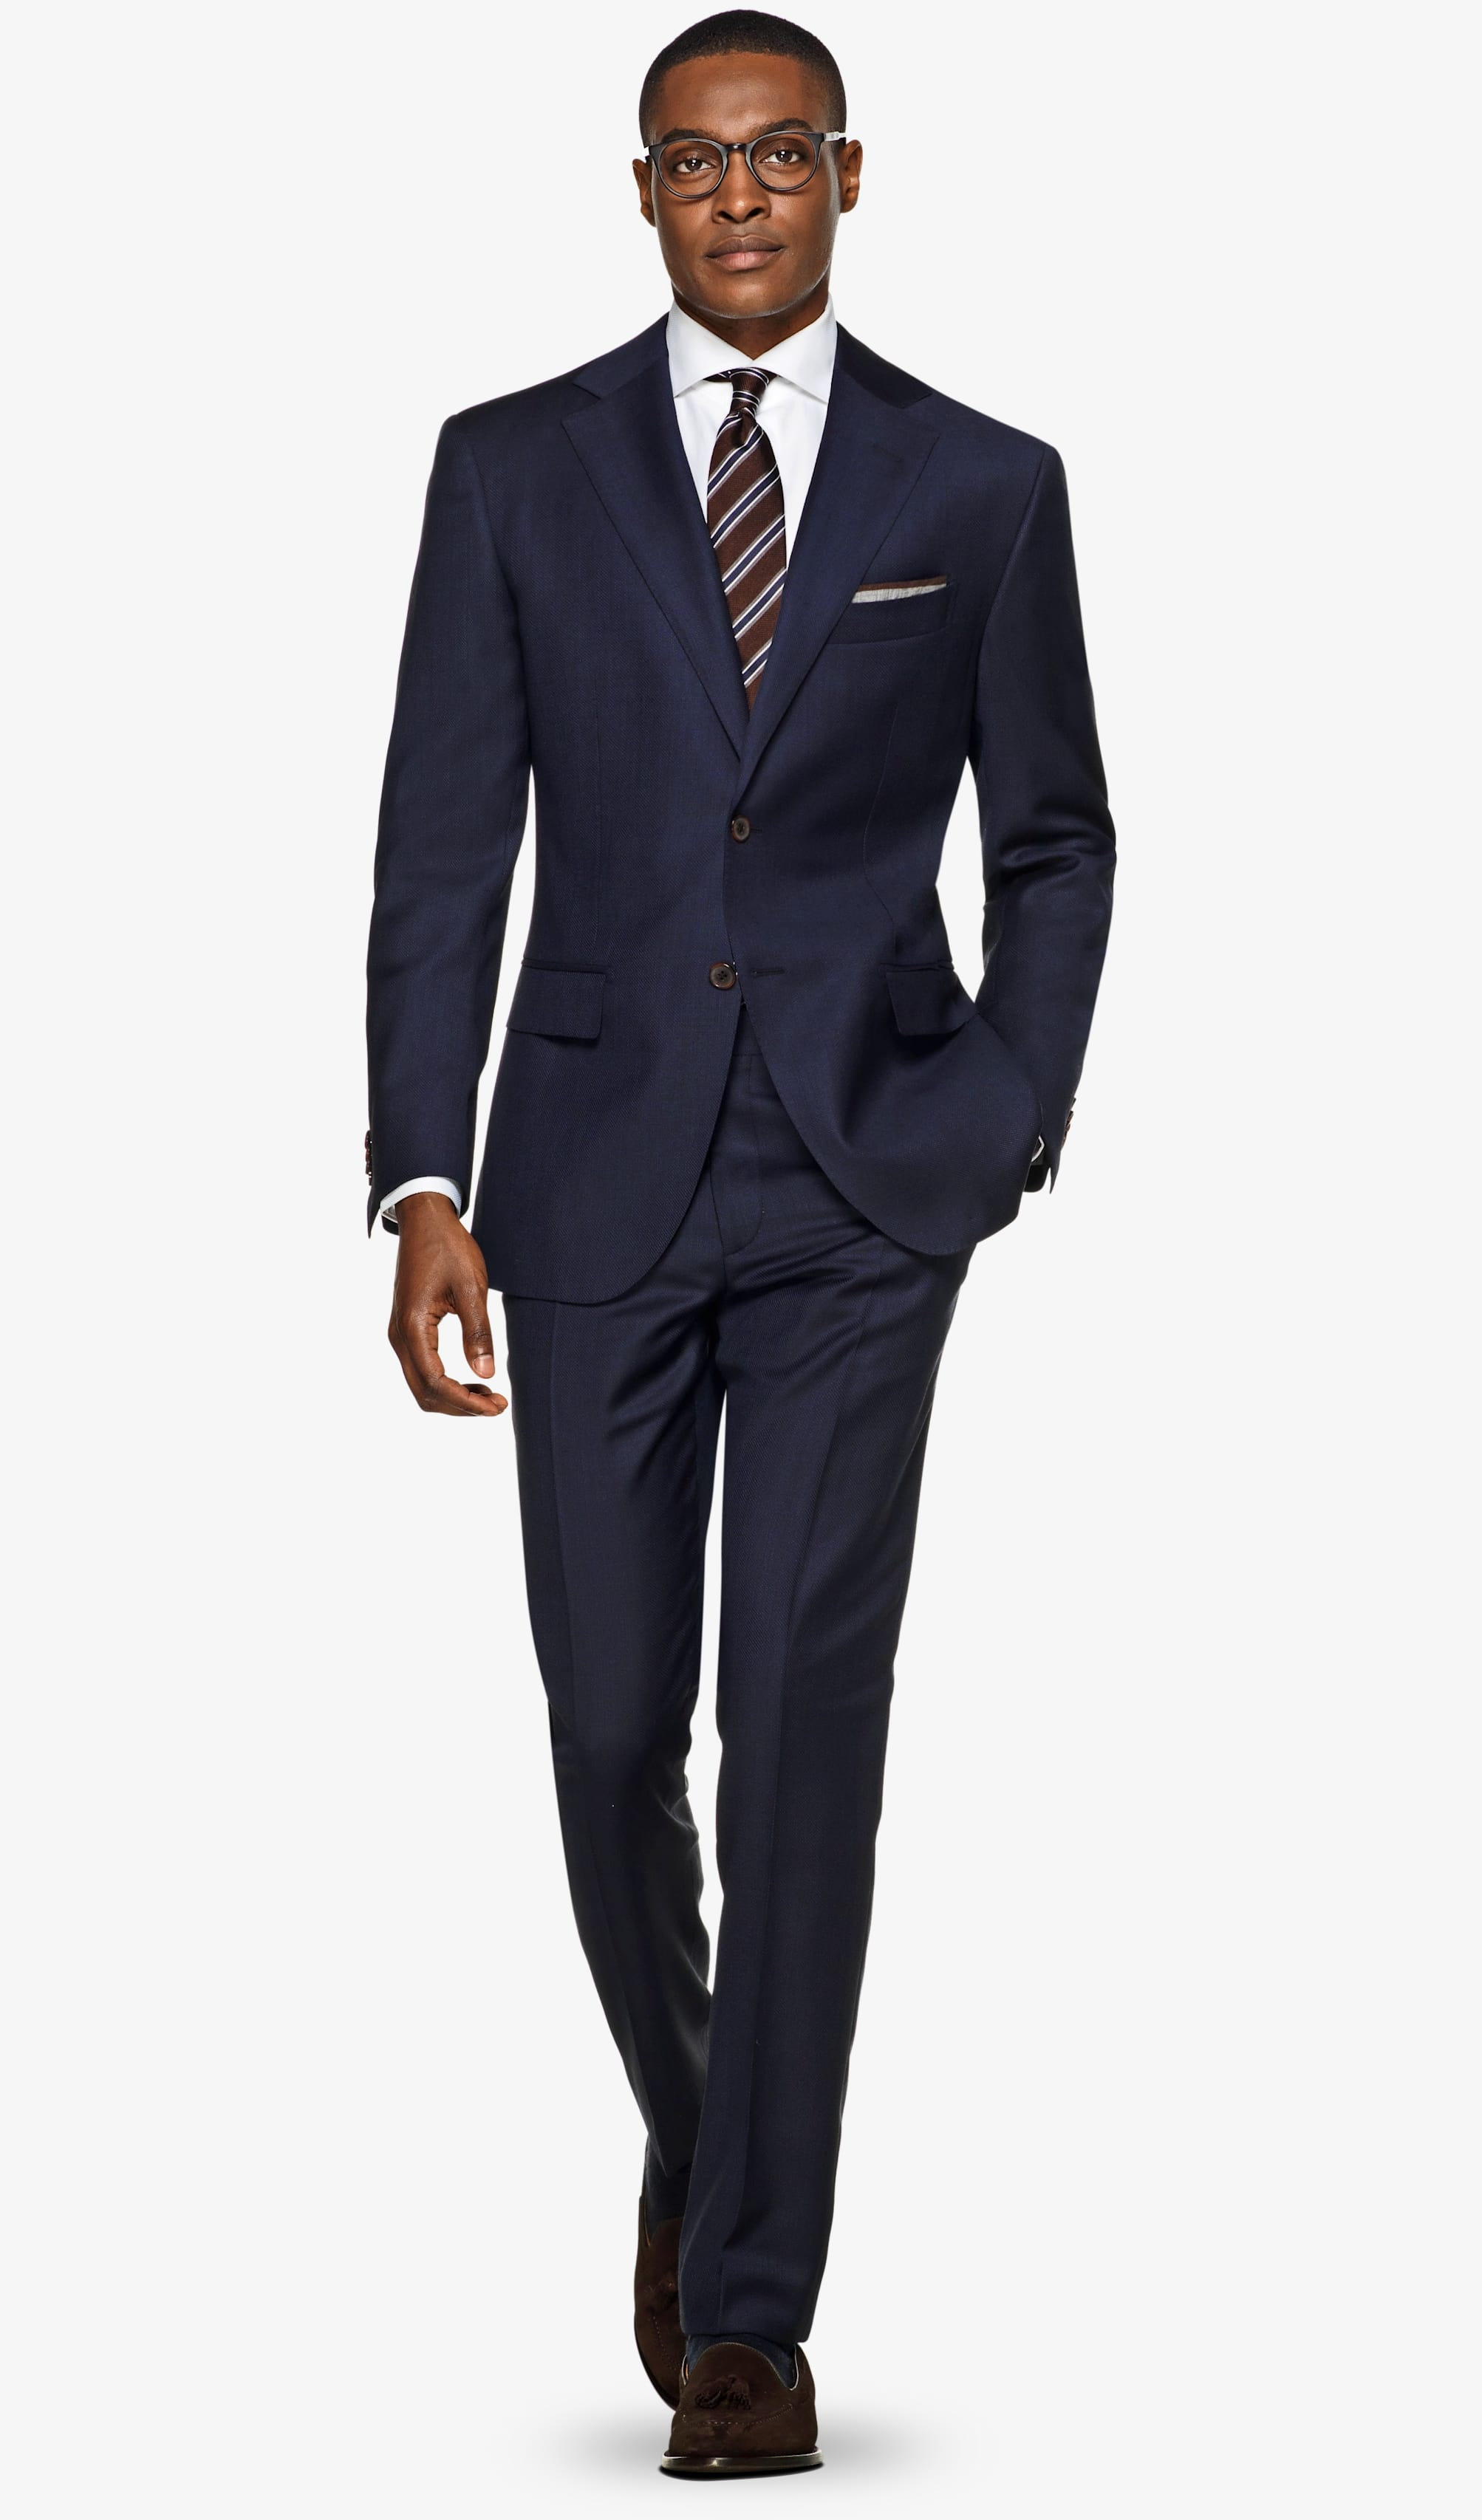 Suit Supply Napoli Suit - A classic Suit jacket with paired pants.